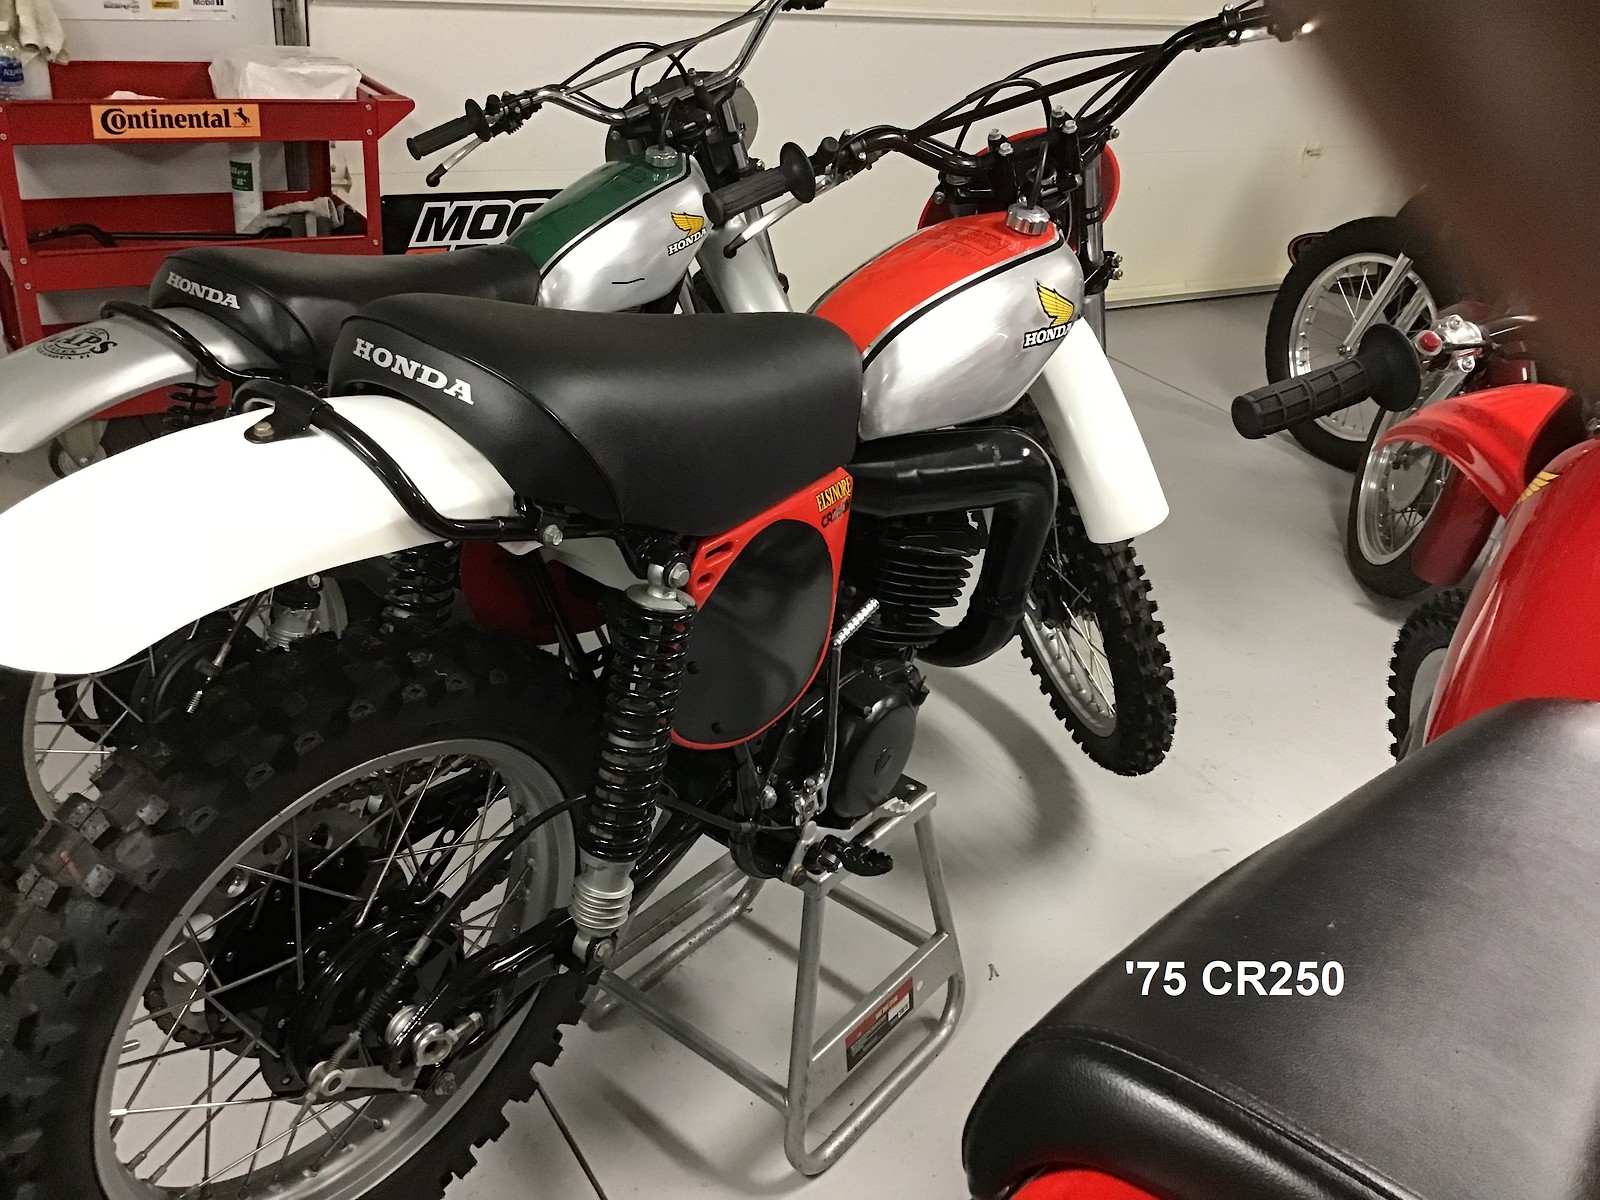 Bikes Coming Up for Sale - Old School Moto - Motocross